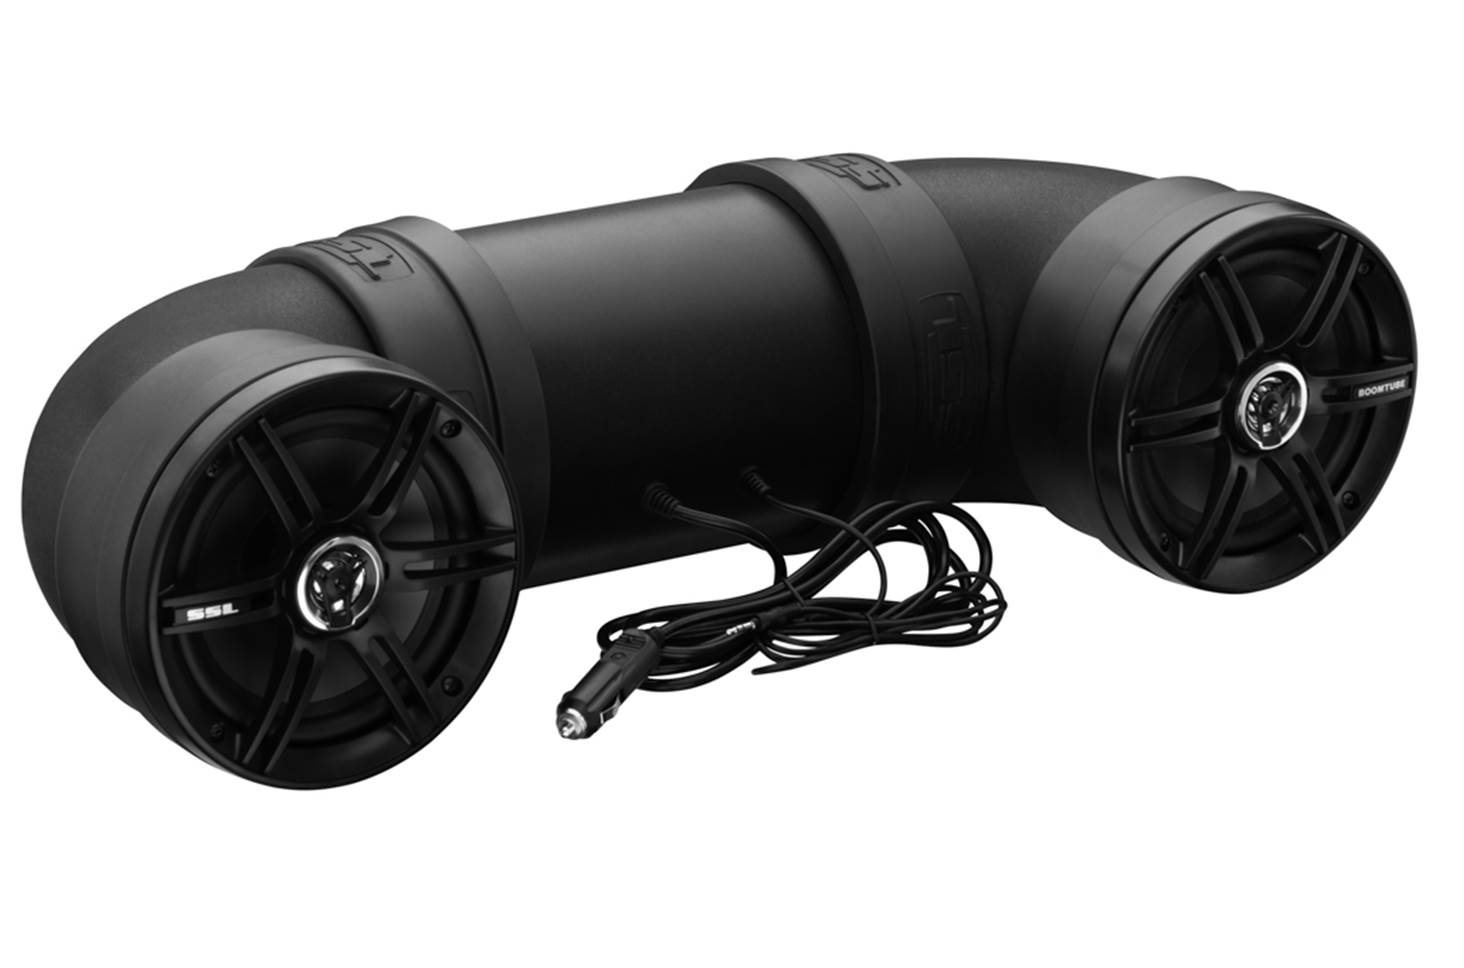 Sound Storm BTB6 Waterproof ATV Speakers